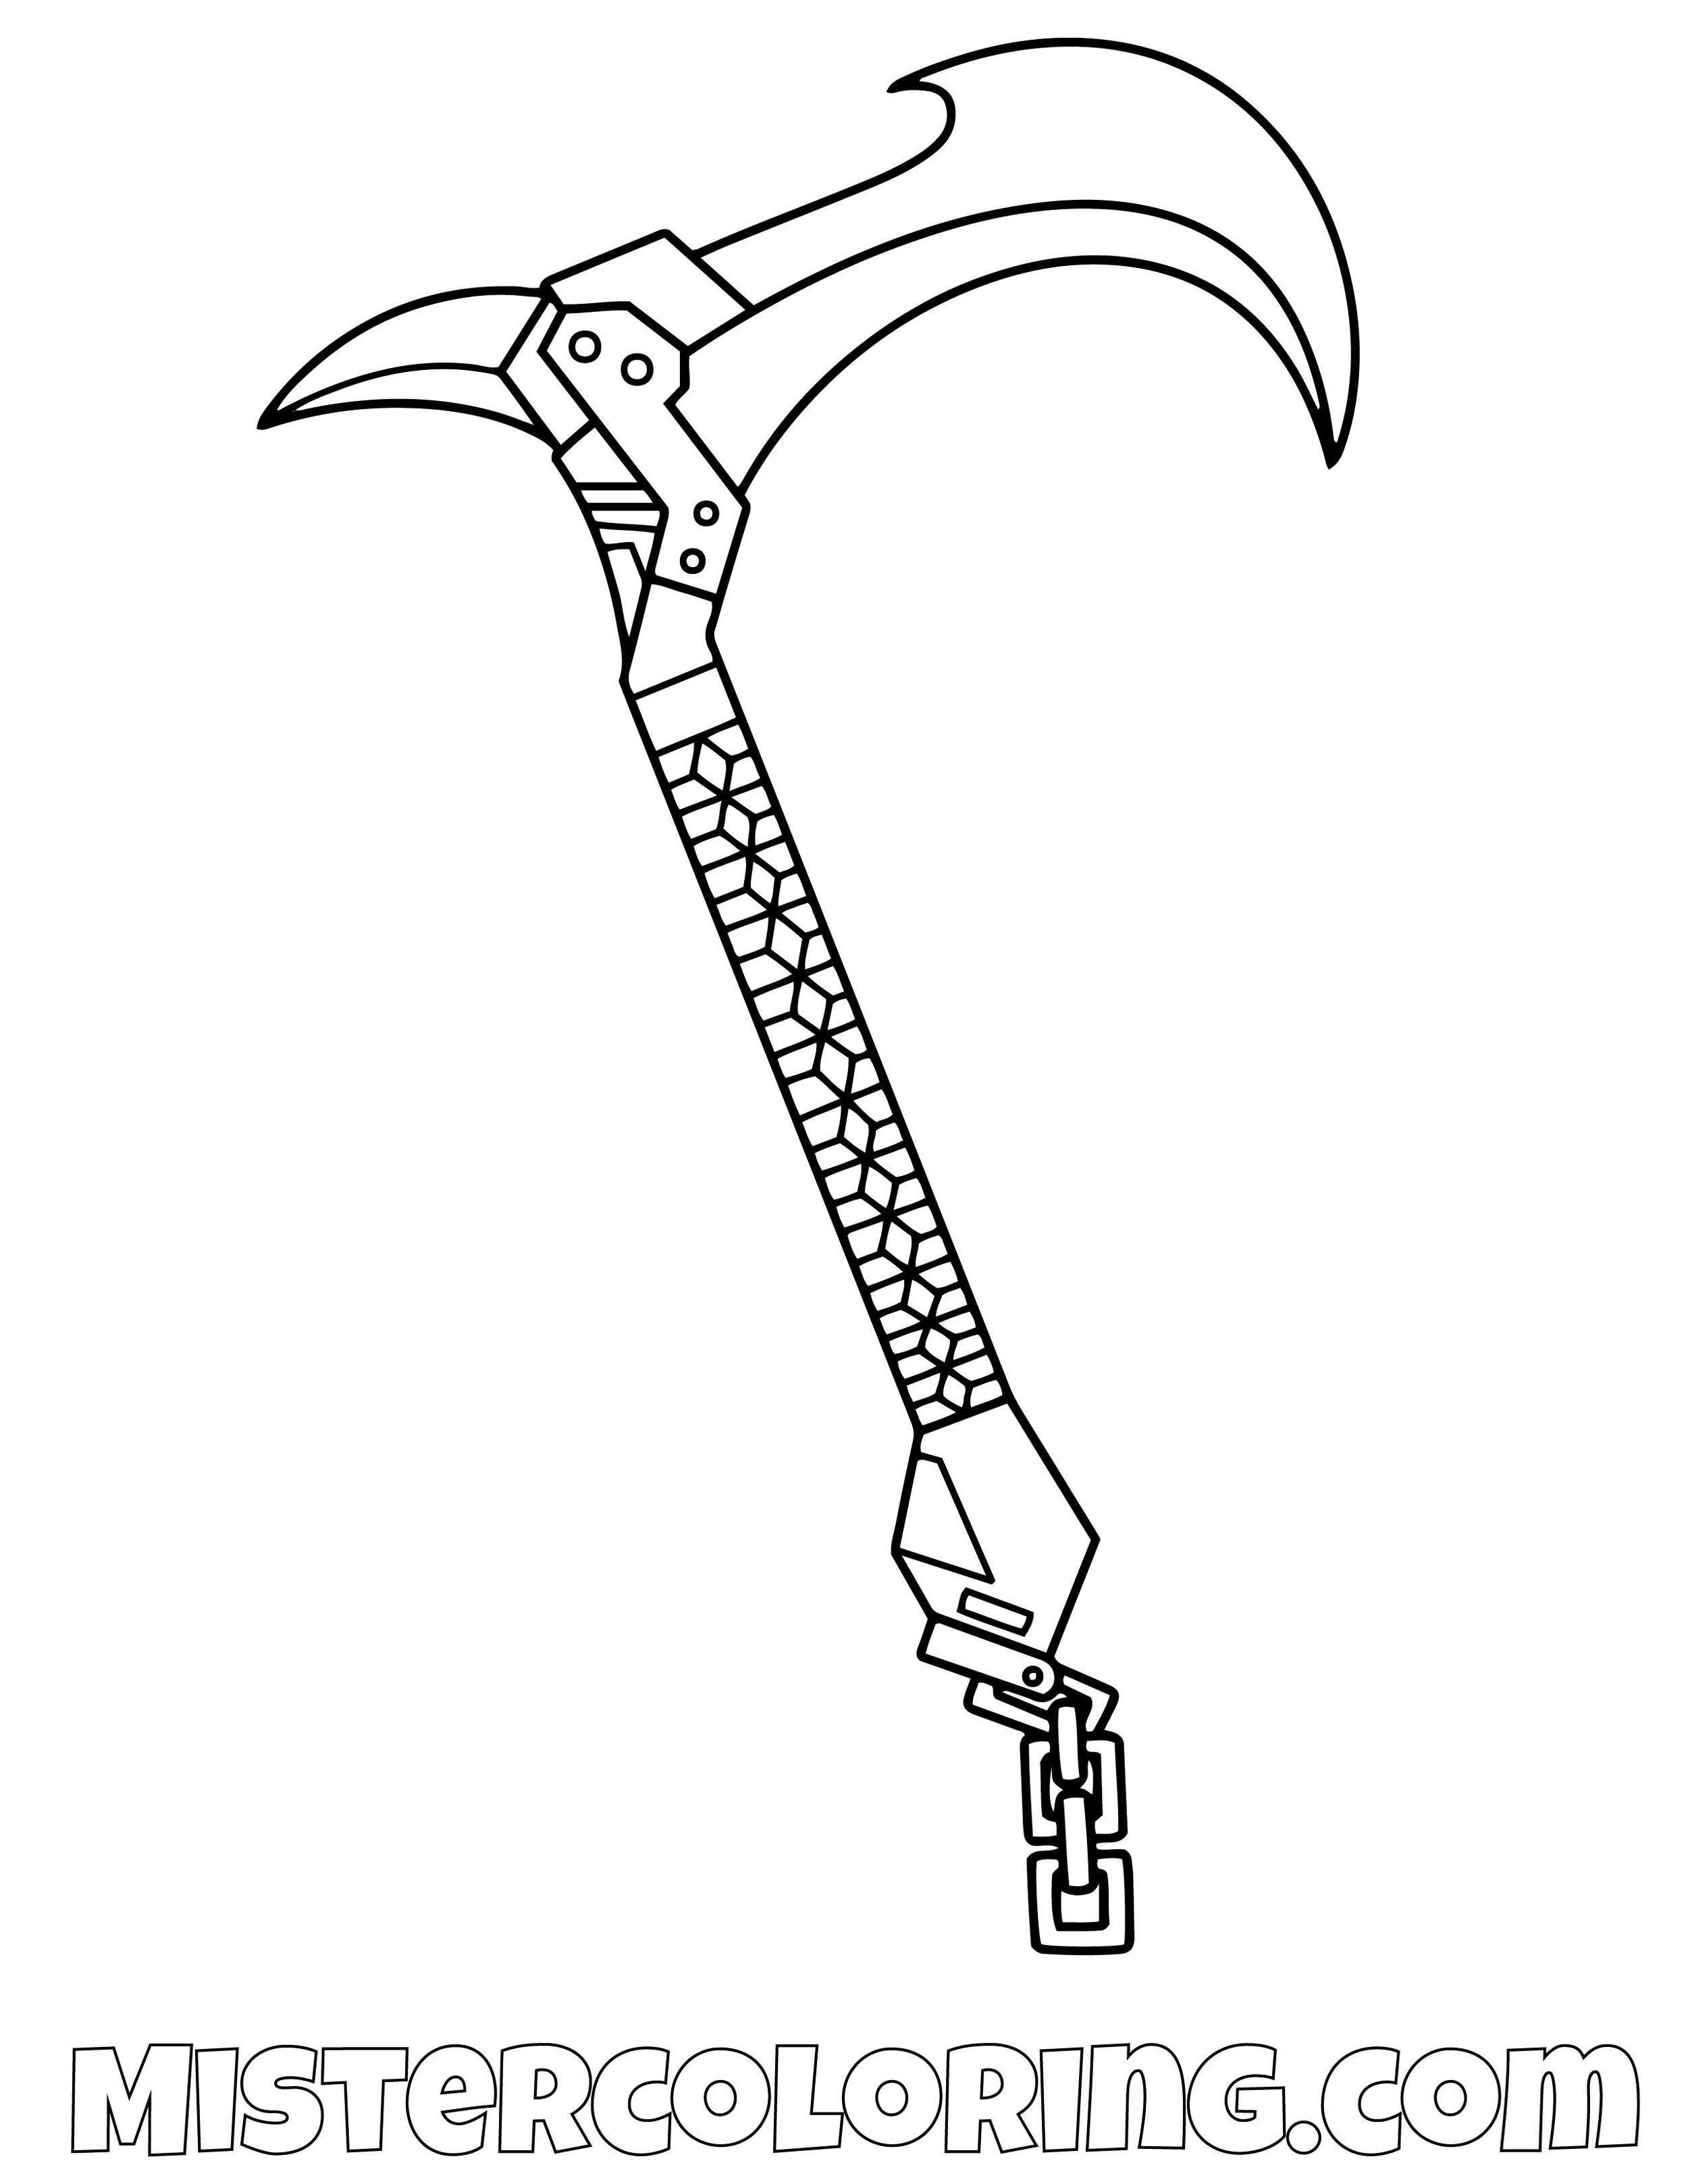 Coloring Pages Fortnite Raven | Coloring pages for boys, Coloring ... | 1294x1000